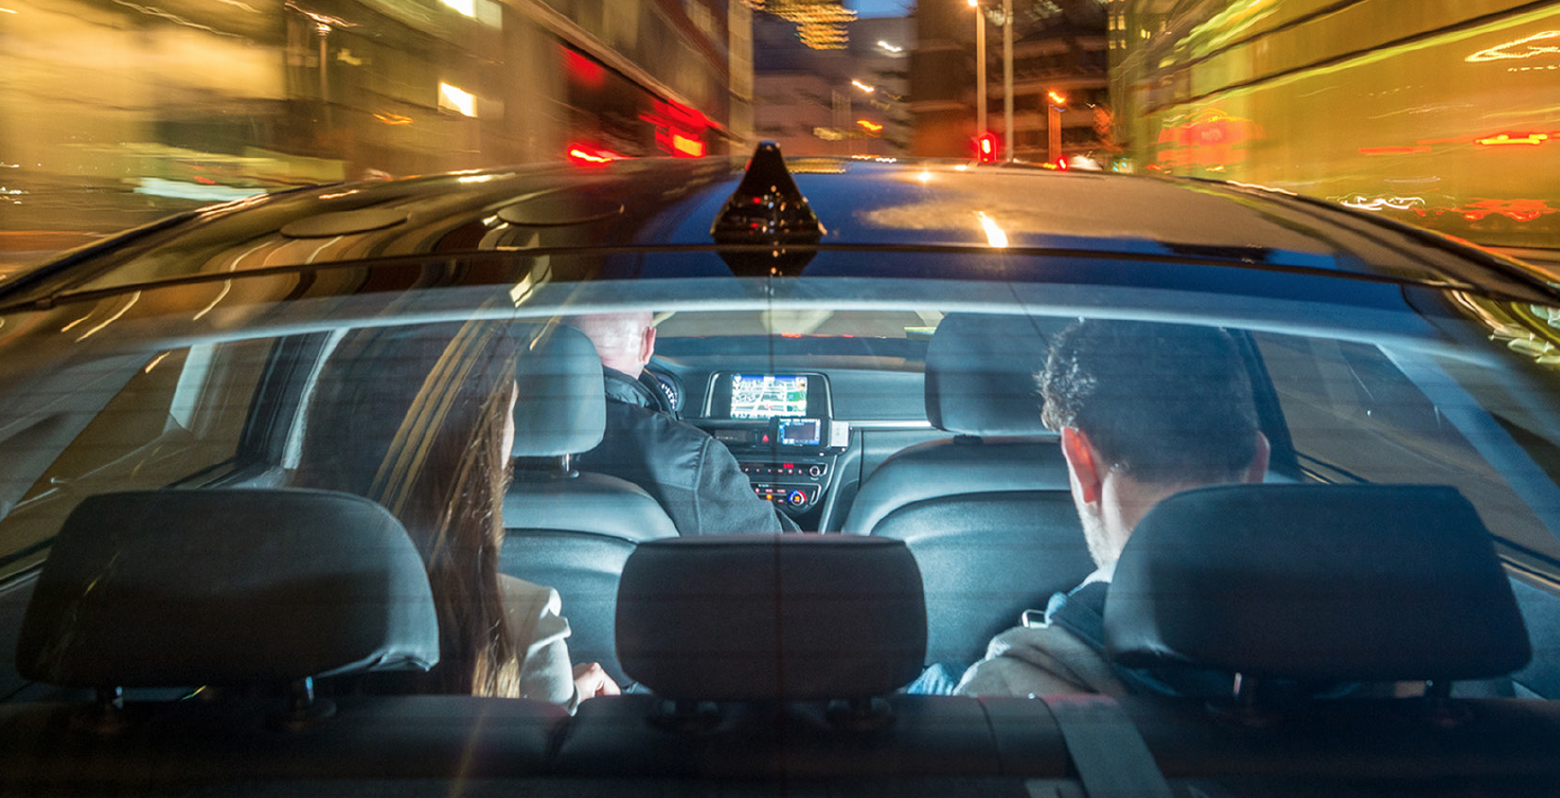 Redefining the Automotive Experience with Human Perception AI